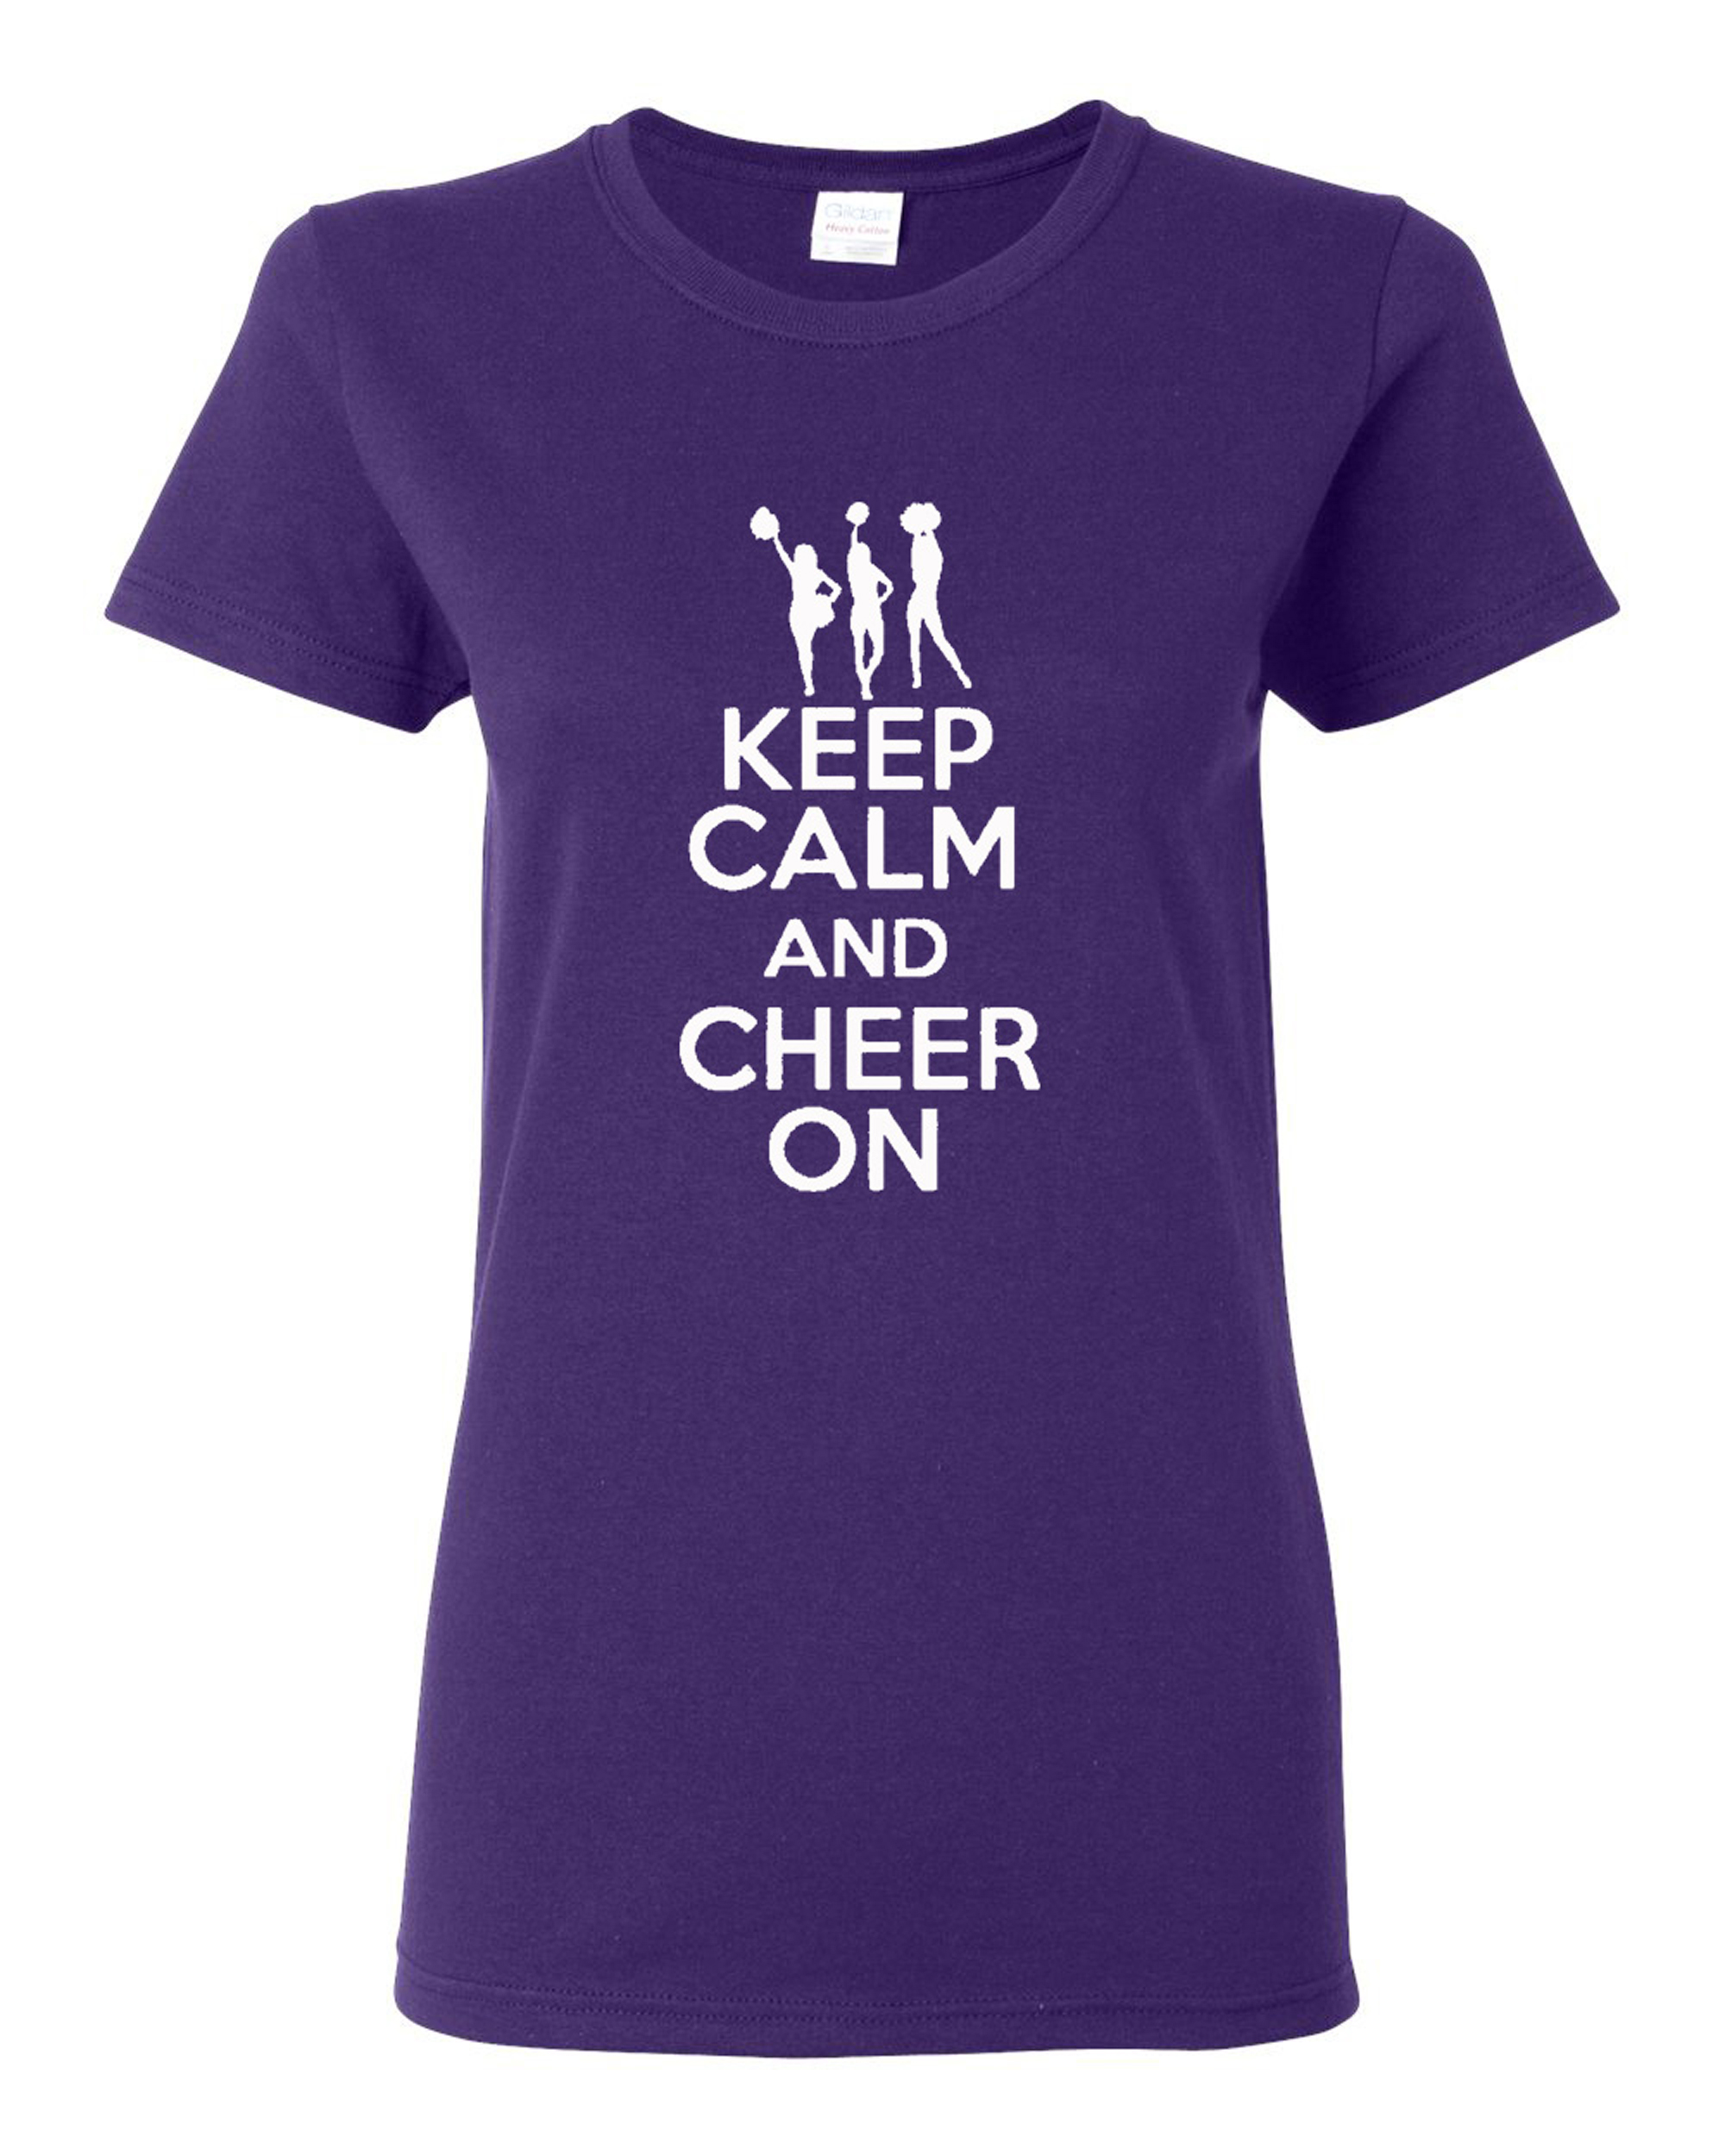 Ladies Keep Calm and Cheer On T-Shirt Tee